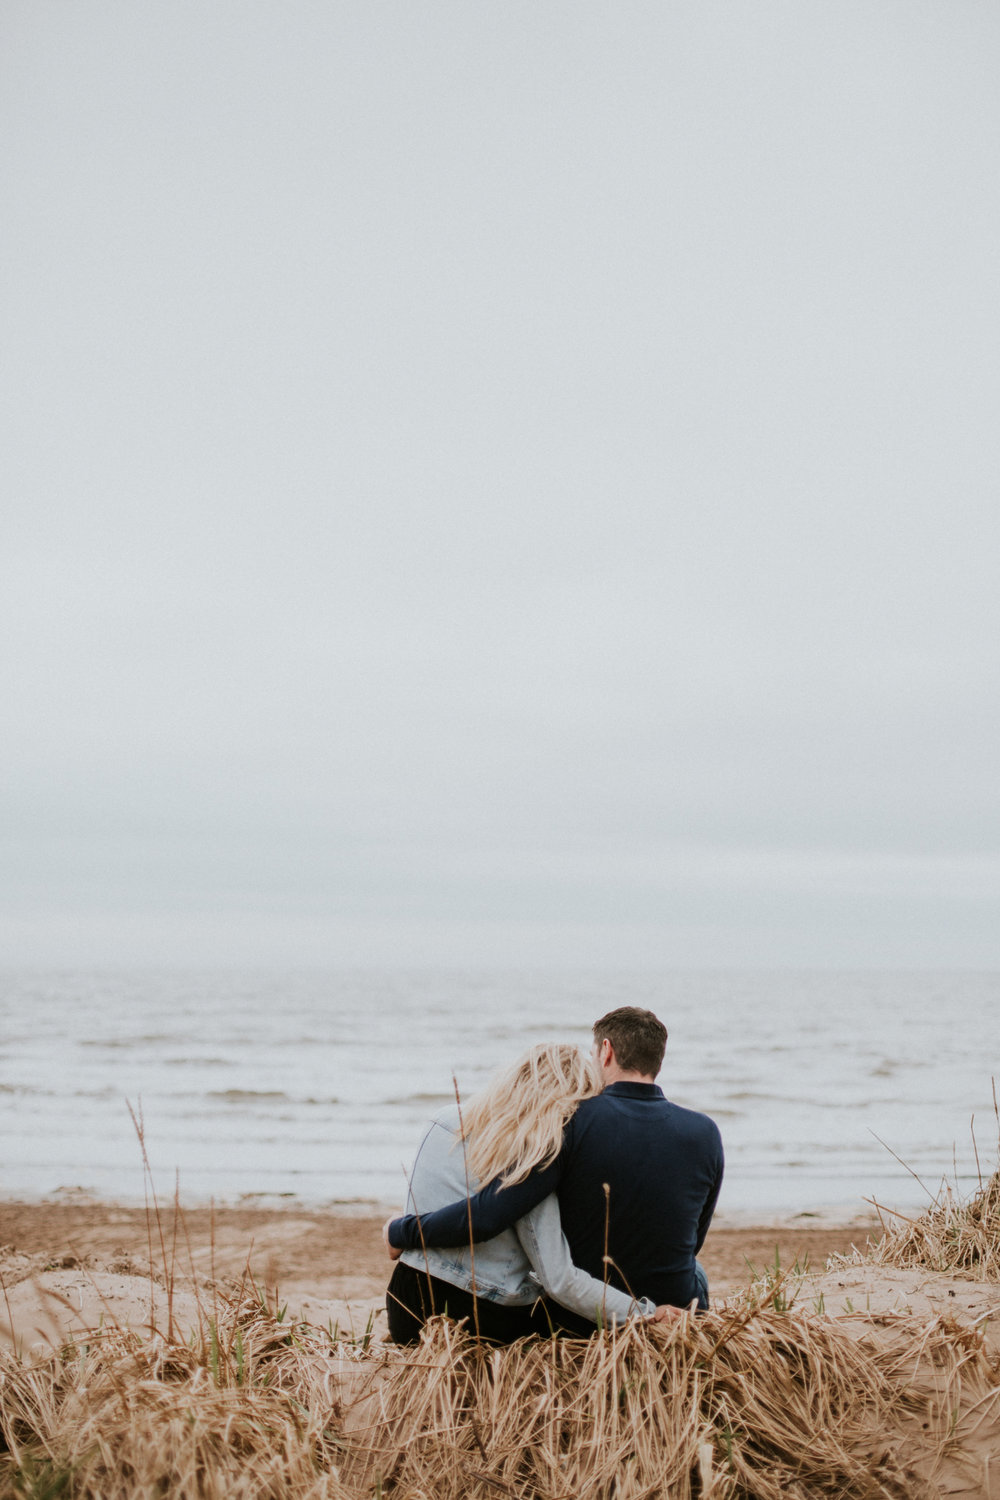 The couple is sitting and cuddling each other and looking at the sea in Troon, Ayrshire